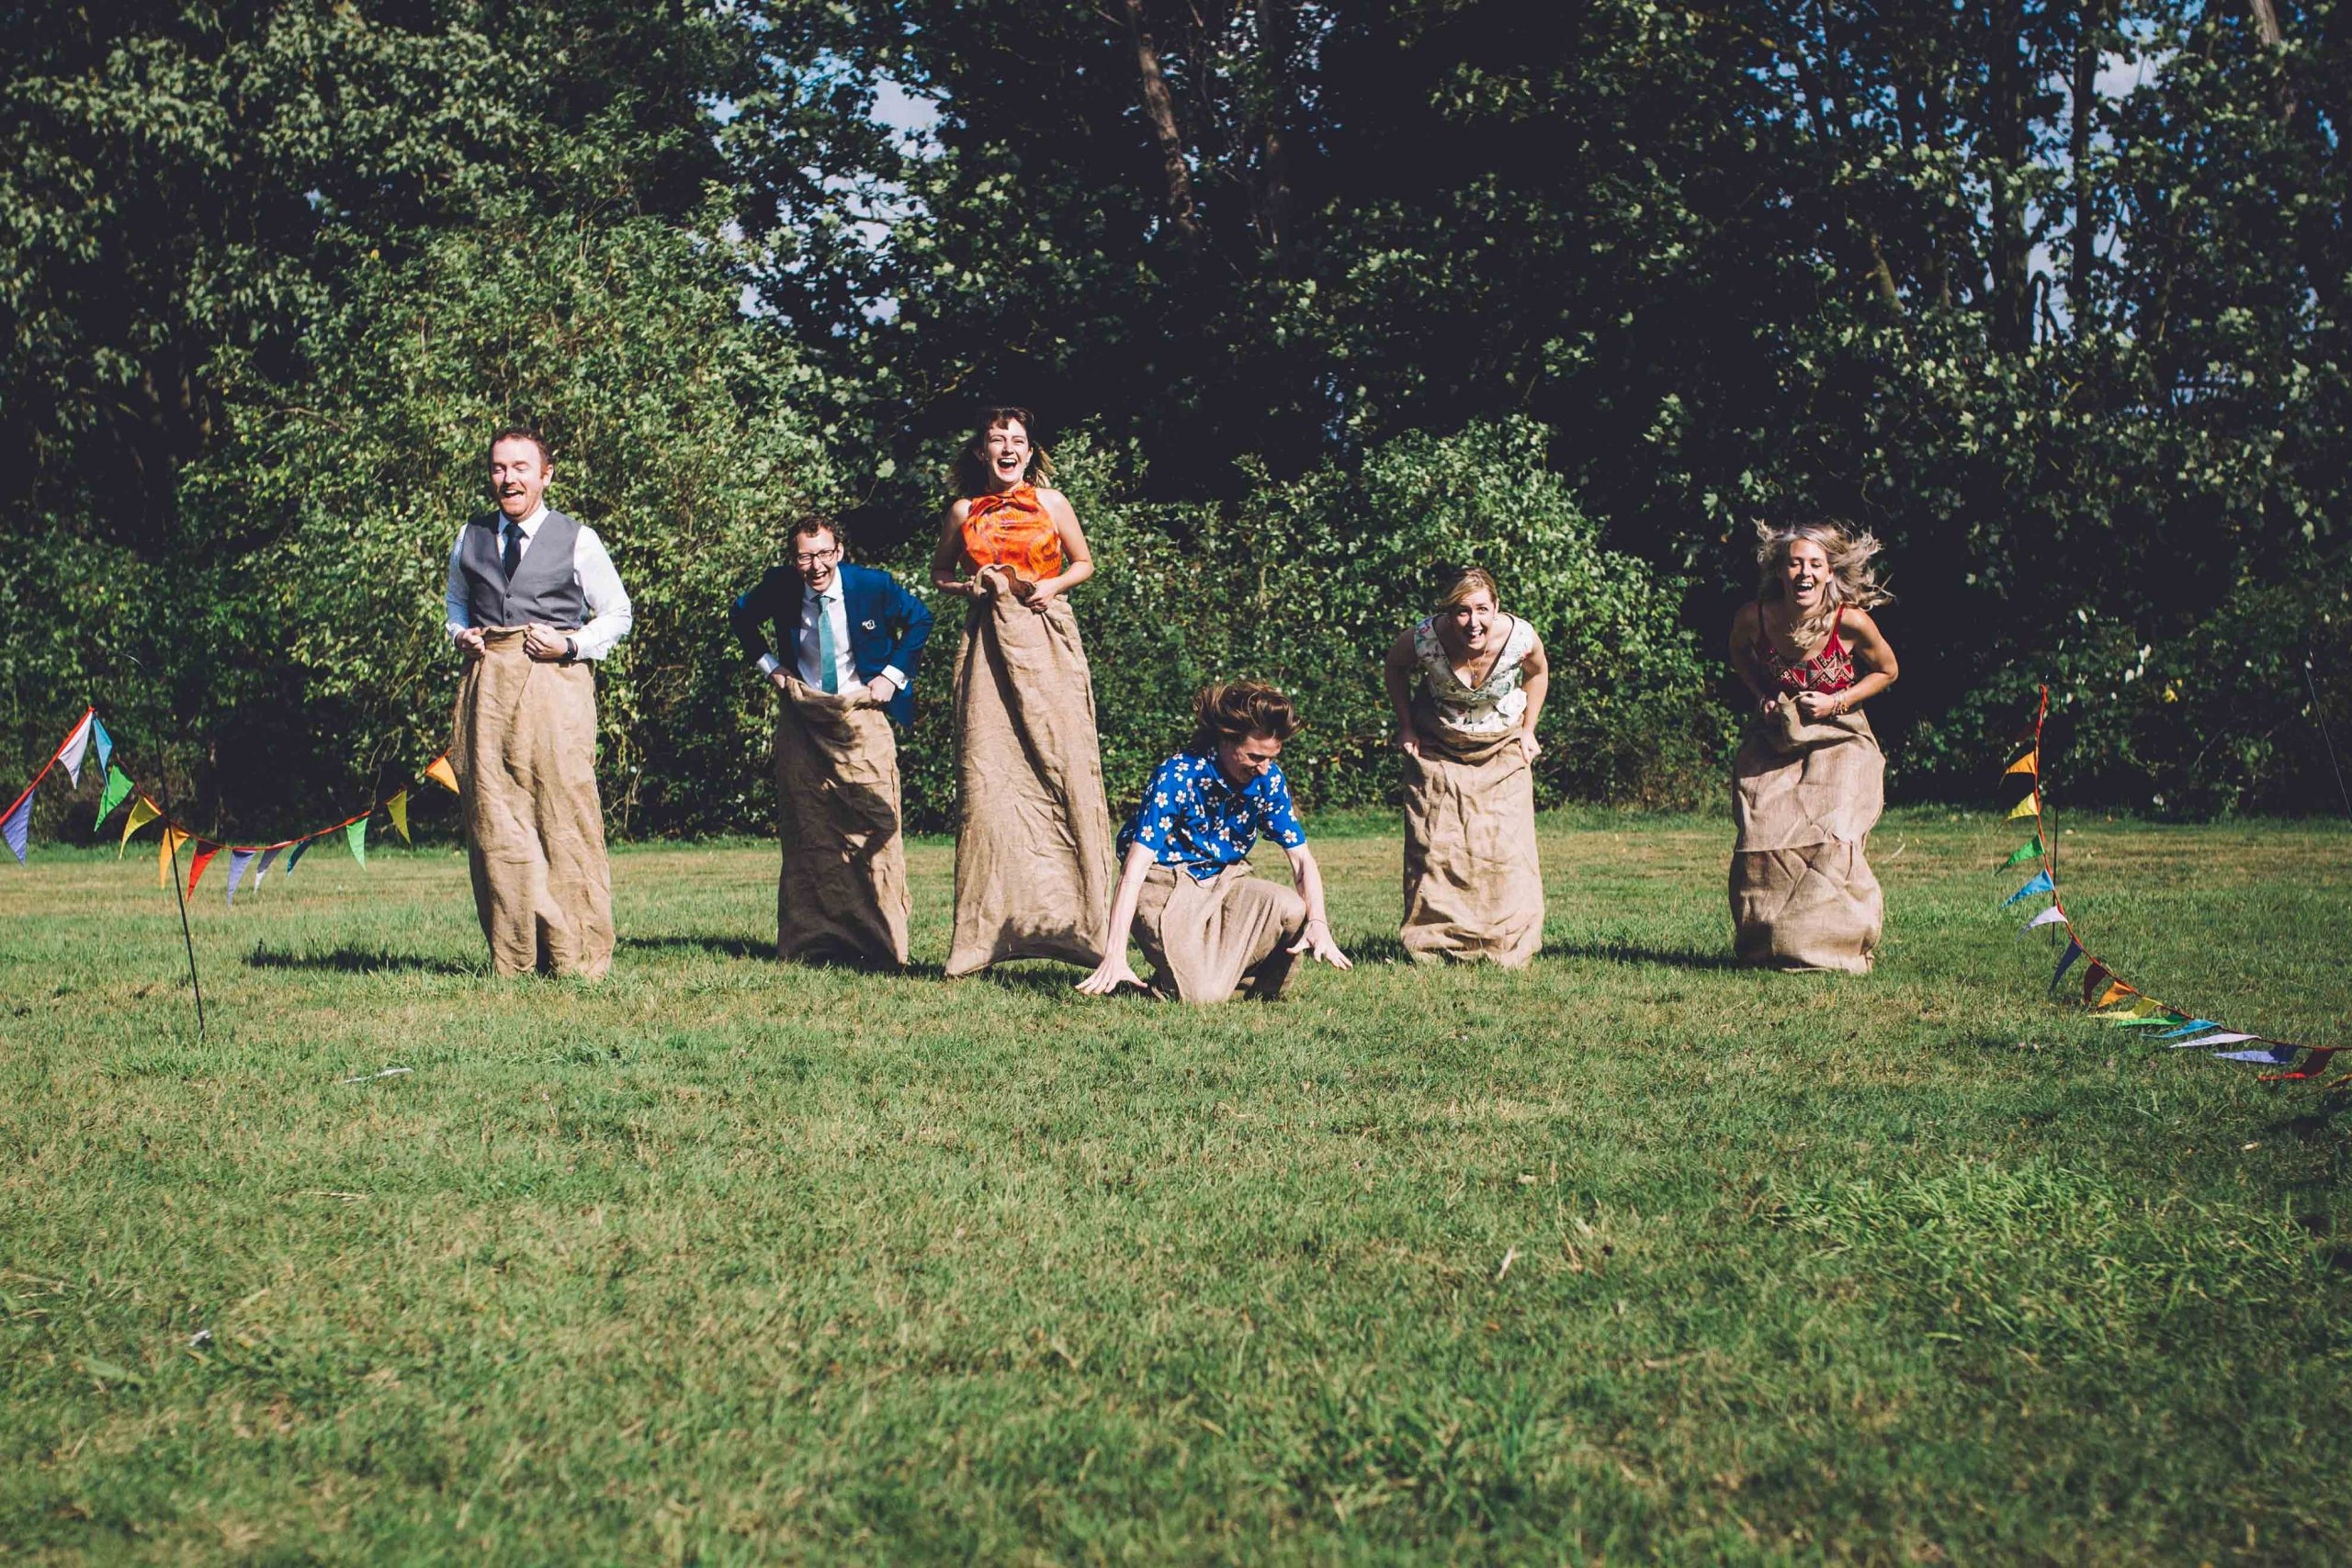 Sack race at letchworth garden city wedding